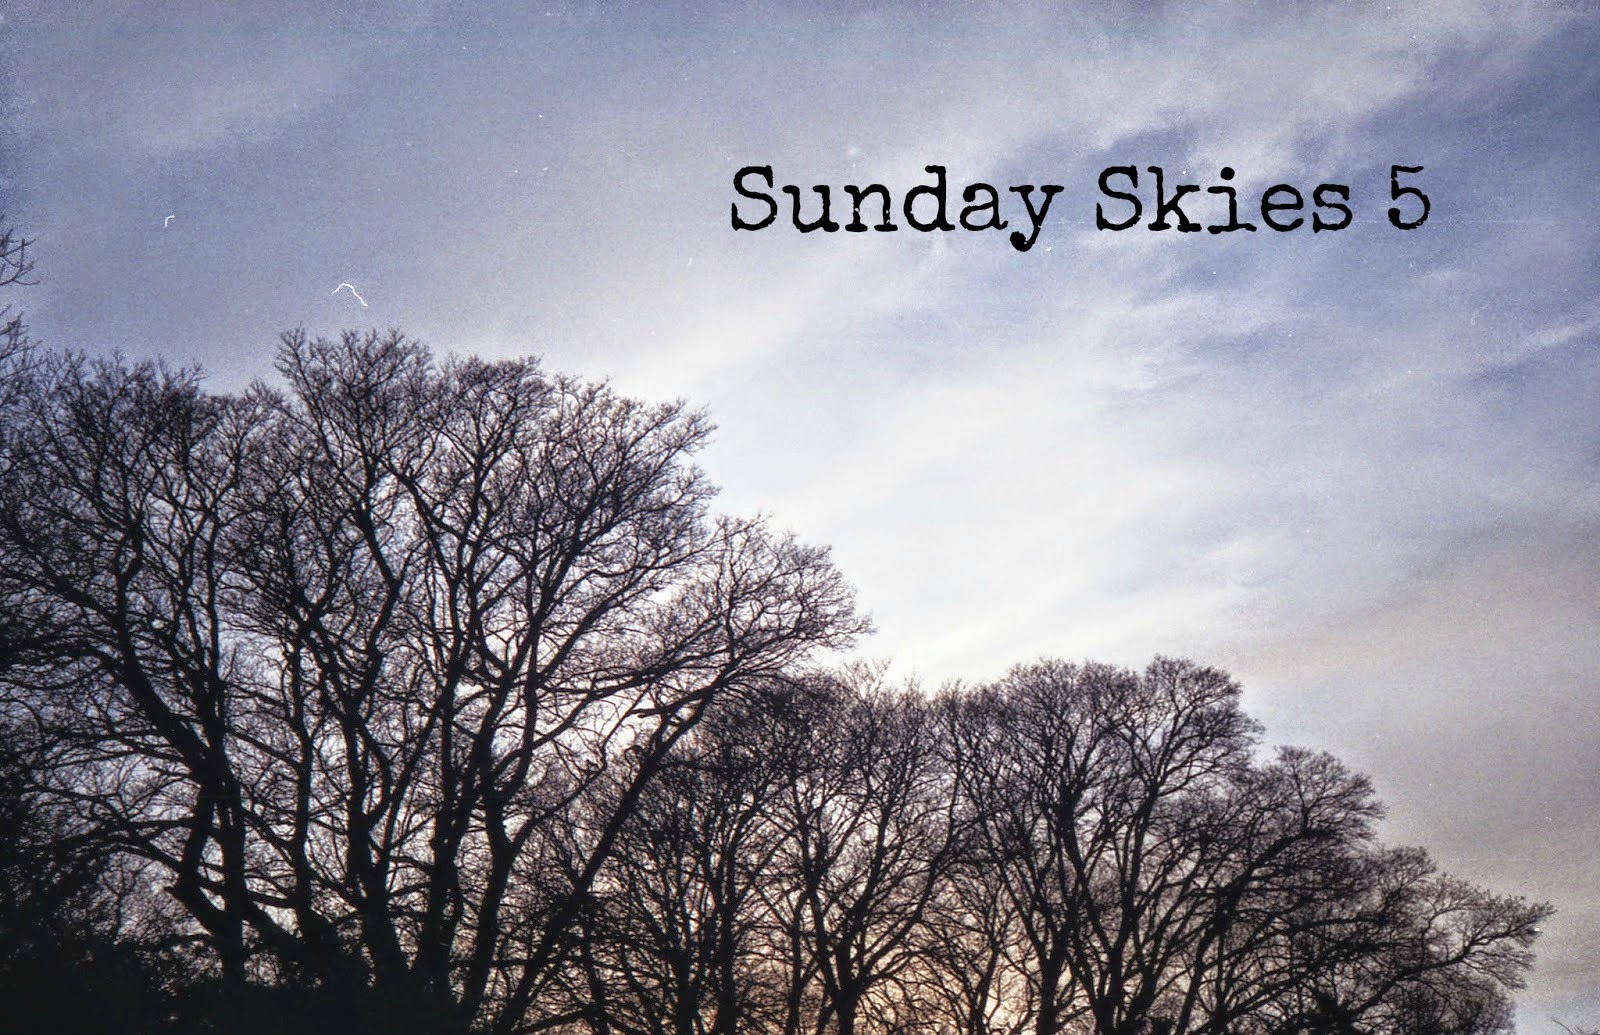 http://talesonfilm.blogspot.co.uk/2014/05/sunday-skies.html